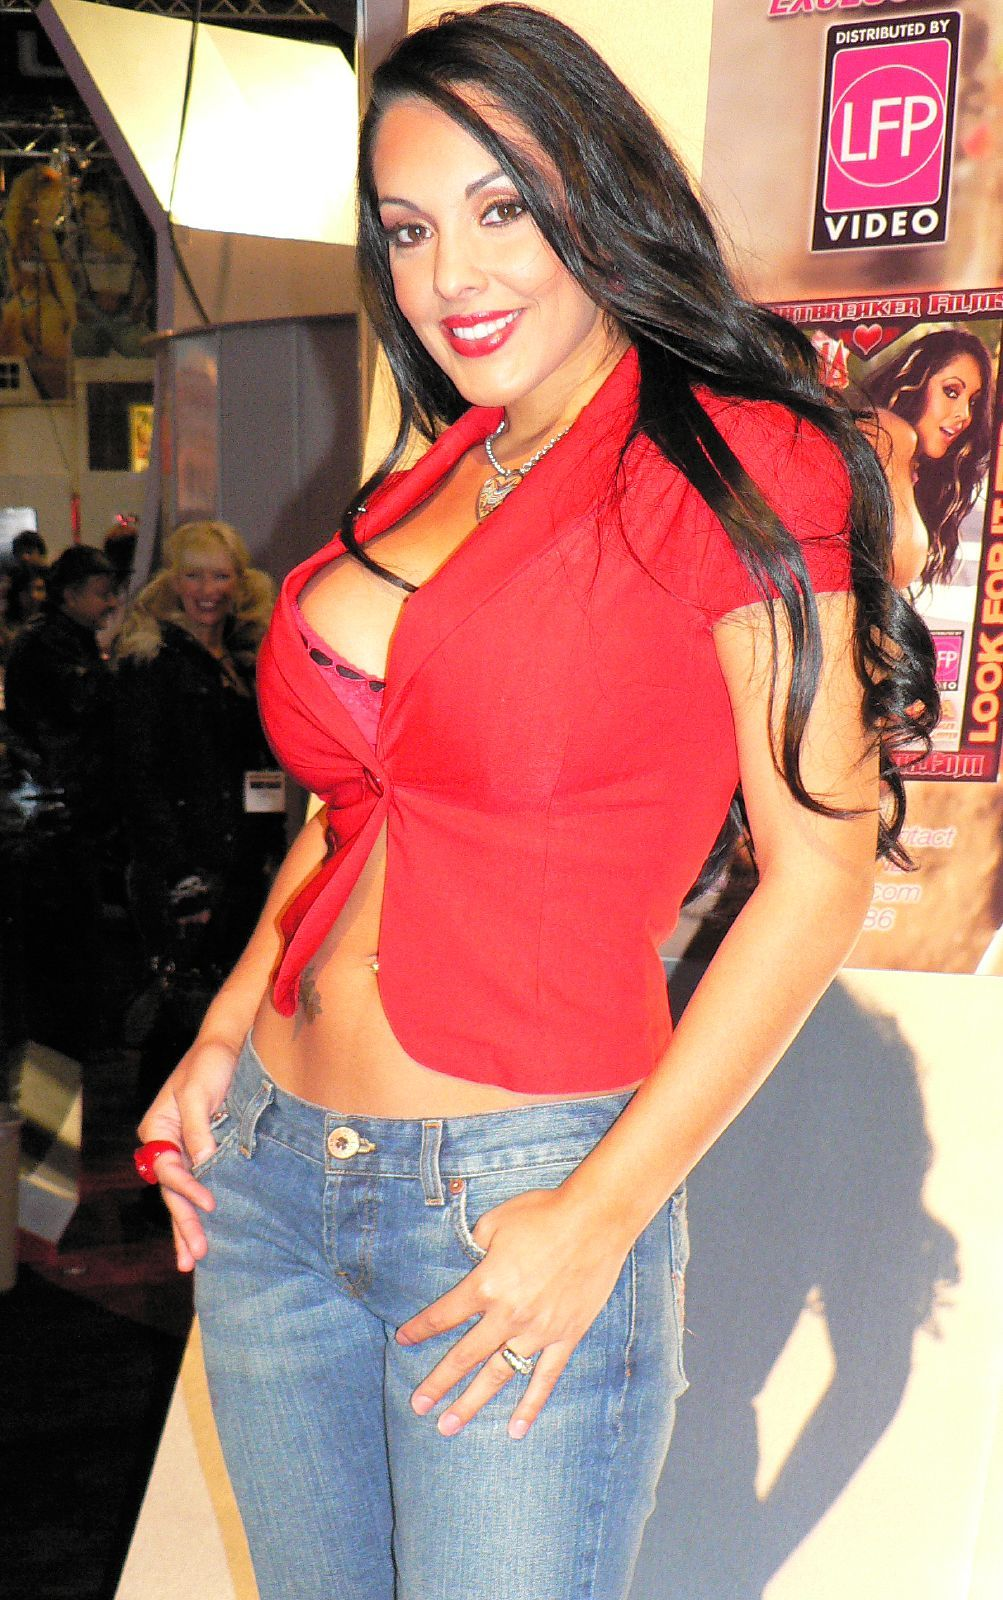 Nina Mercedez Photo